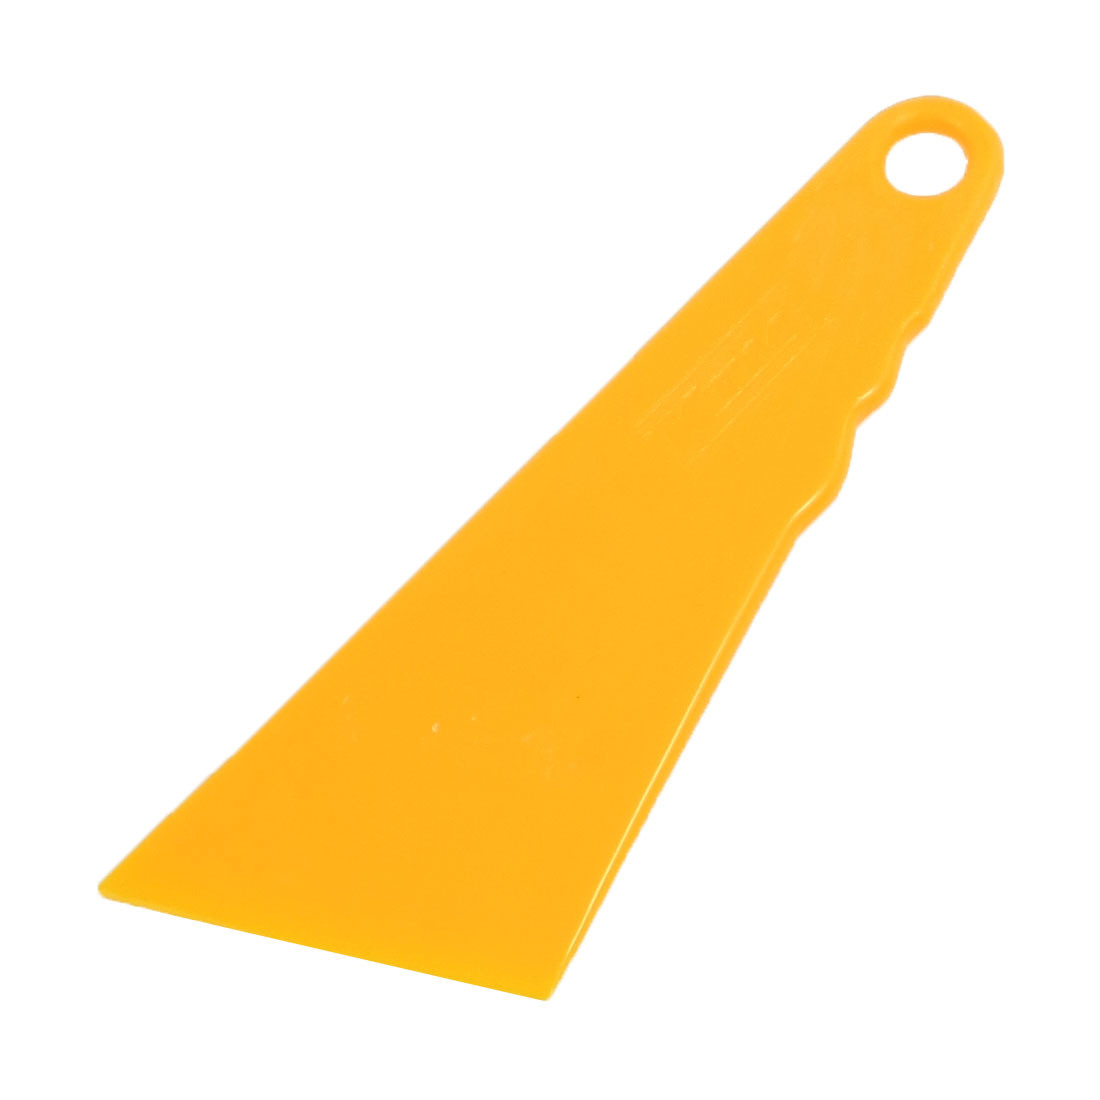 Car Orange Plastic Triangle Window Glass Cleaning Scraper Blade